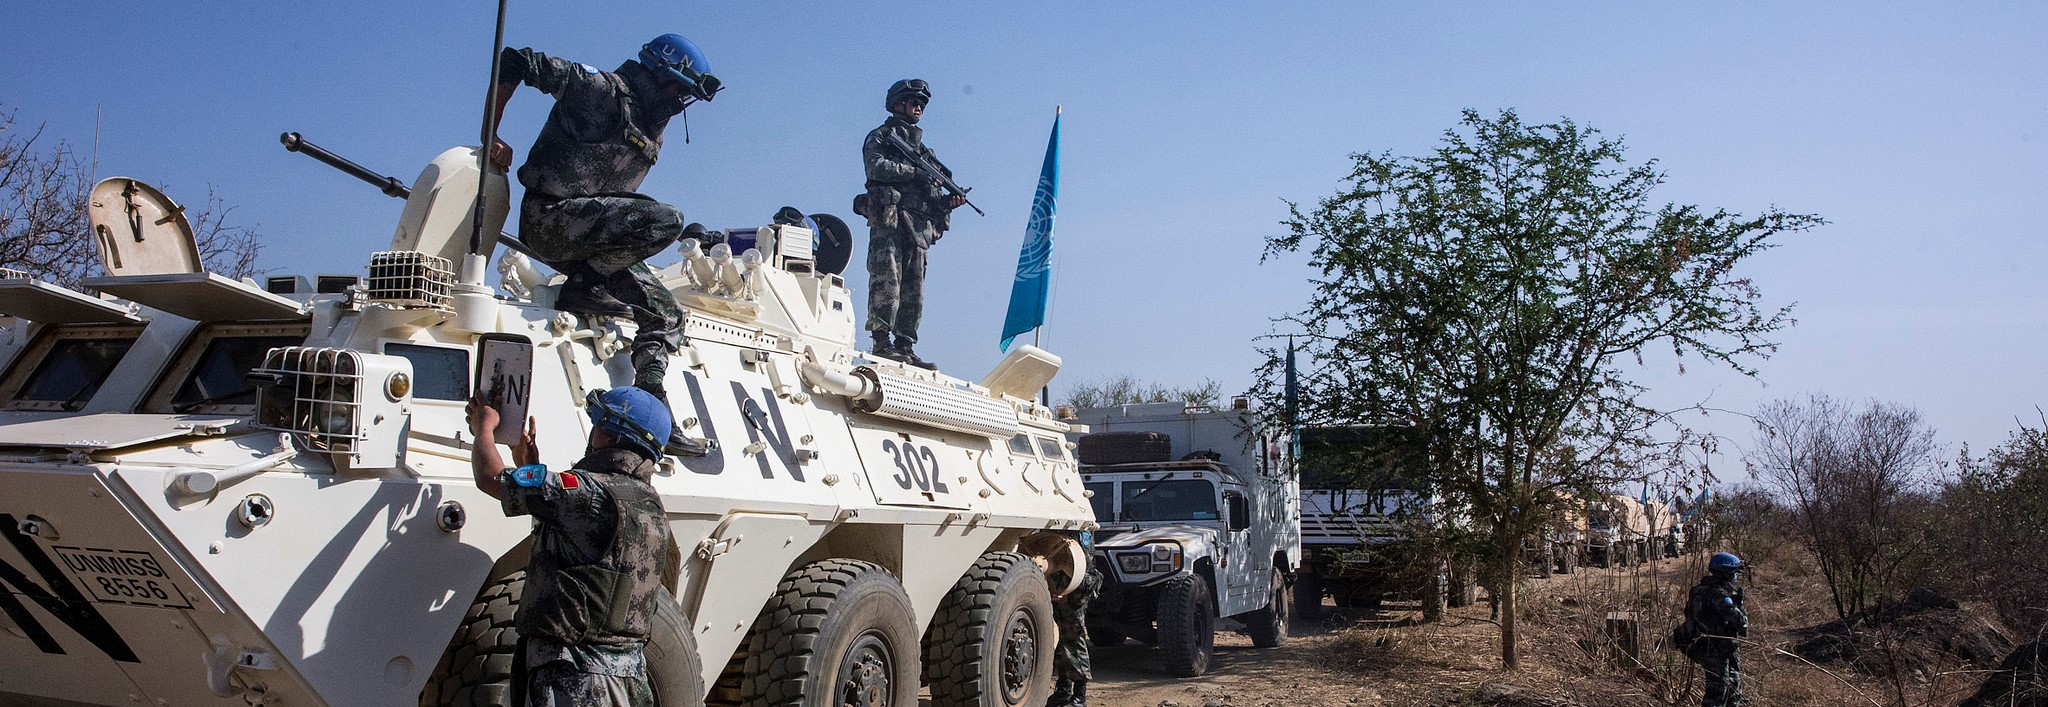 A UN-protected convoy travelled through South Sudan in January to assess the humanitarian situation (Photo: Flickr/UNMISS)